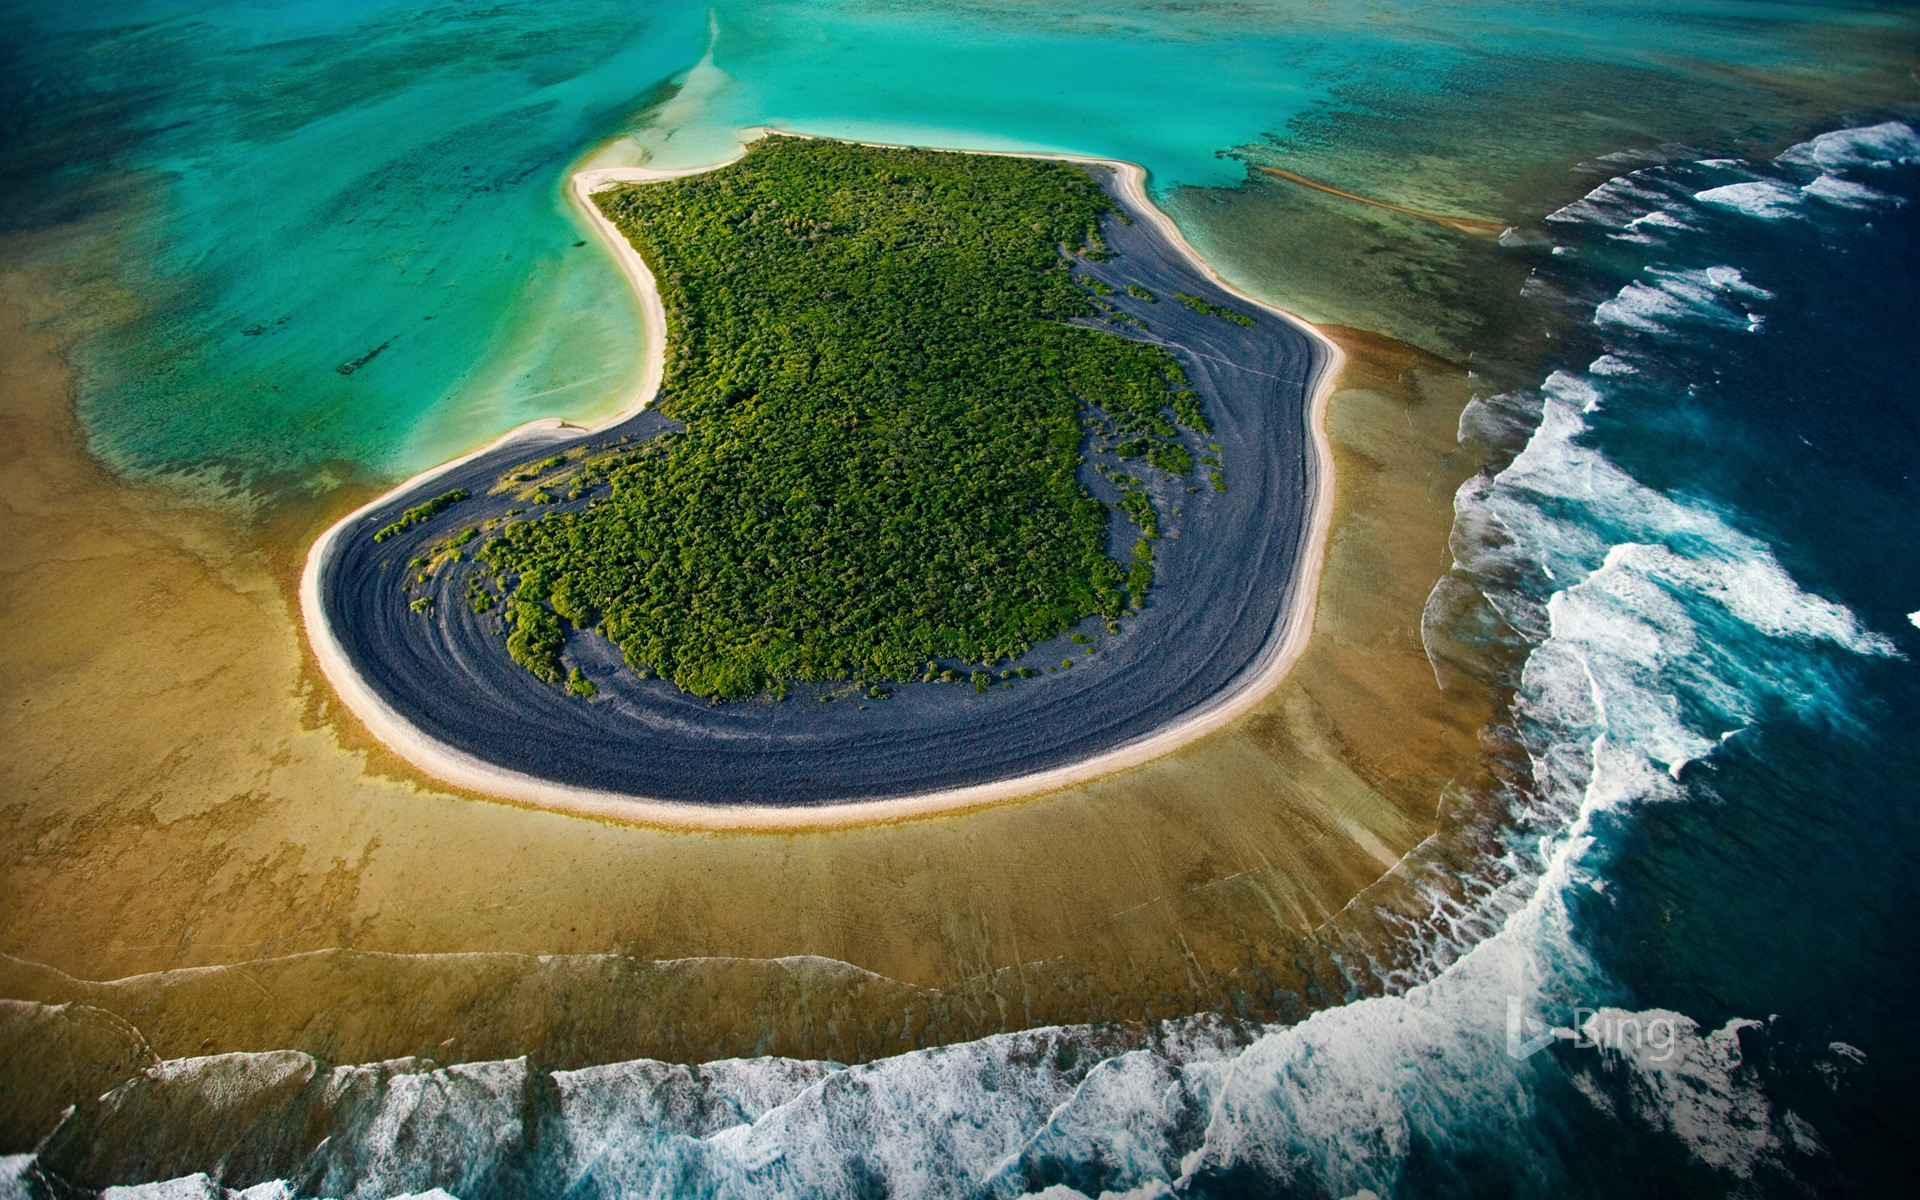 Nuami Islet, Nokan Hui atoll at the south of the Isle of Pines, New Caledonia, France